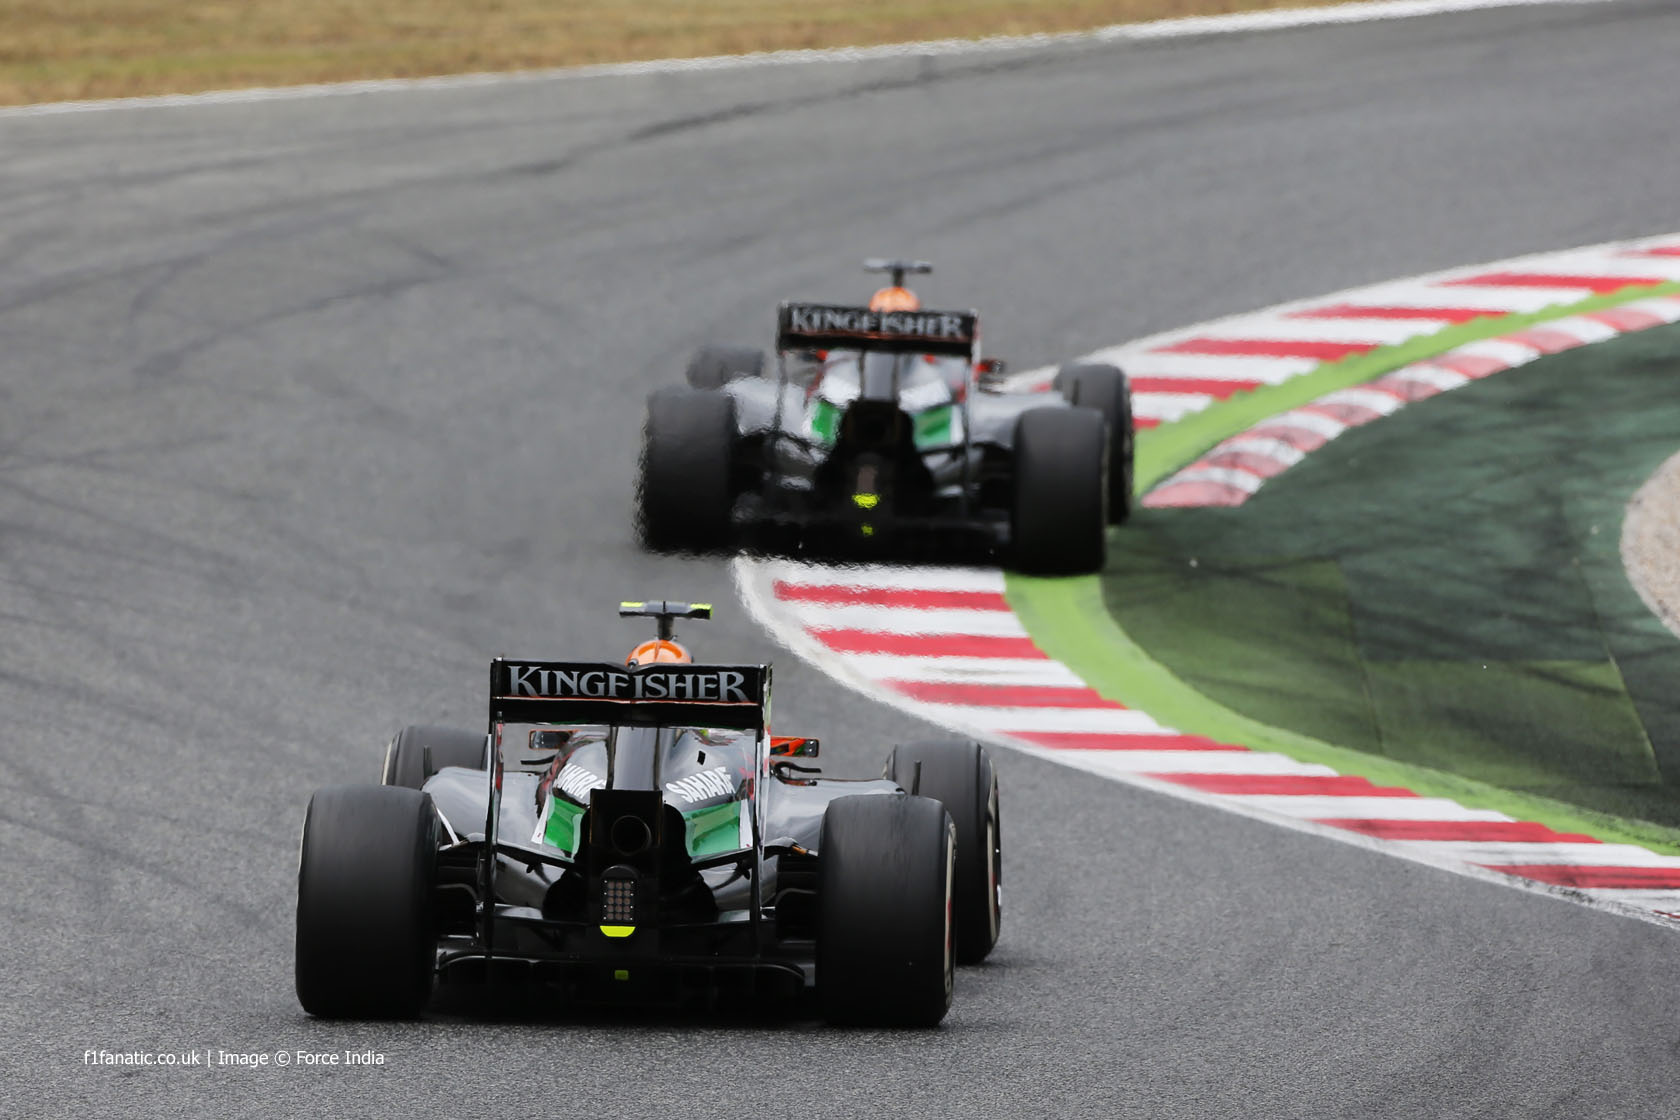 Sergio Perez, Force India, Circuit de Catalunya, 2014